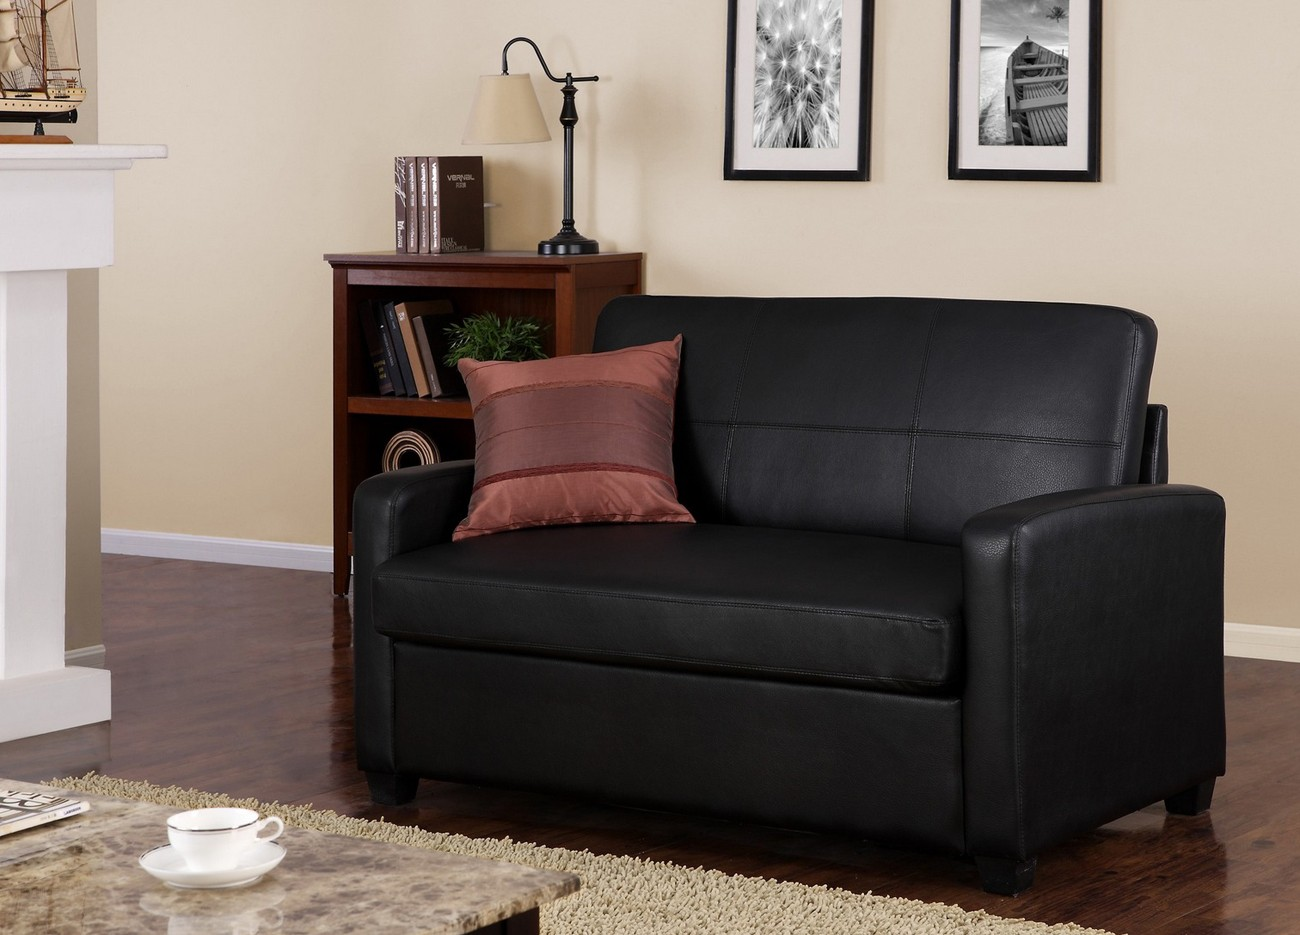 Classy black leather single sleeper chair decorated in the living room with decorative cushion and beige